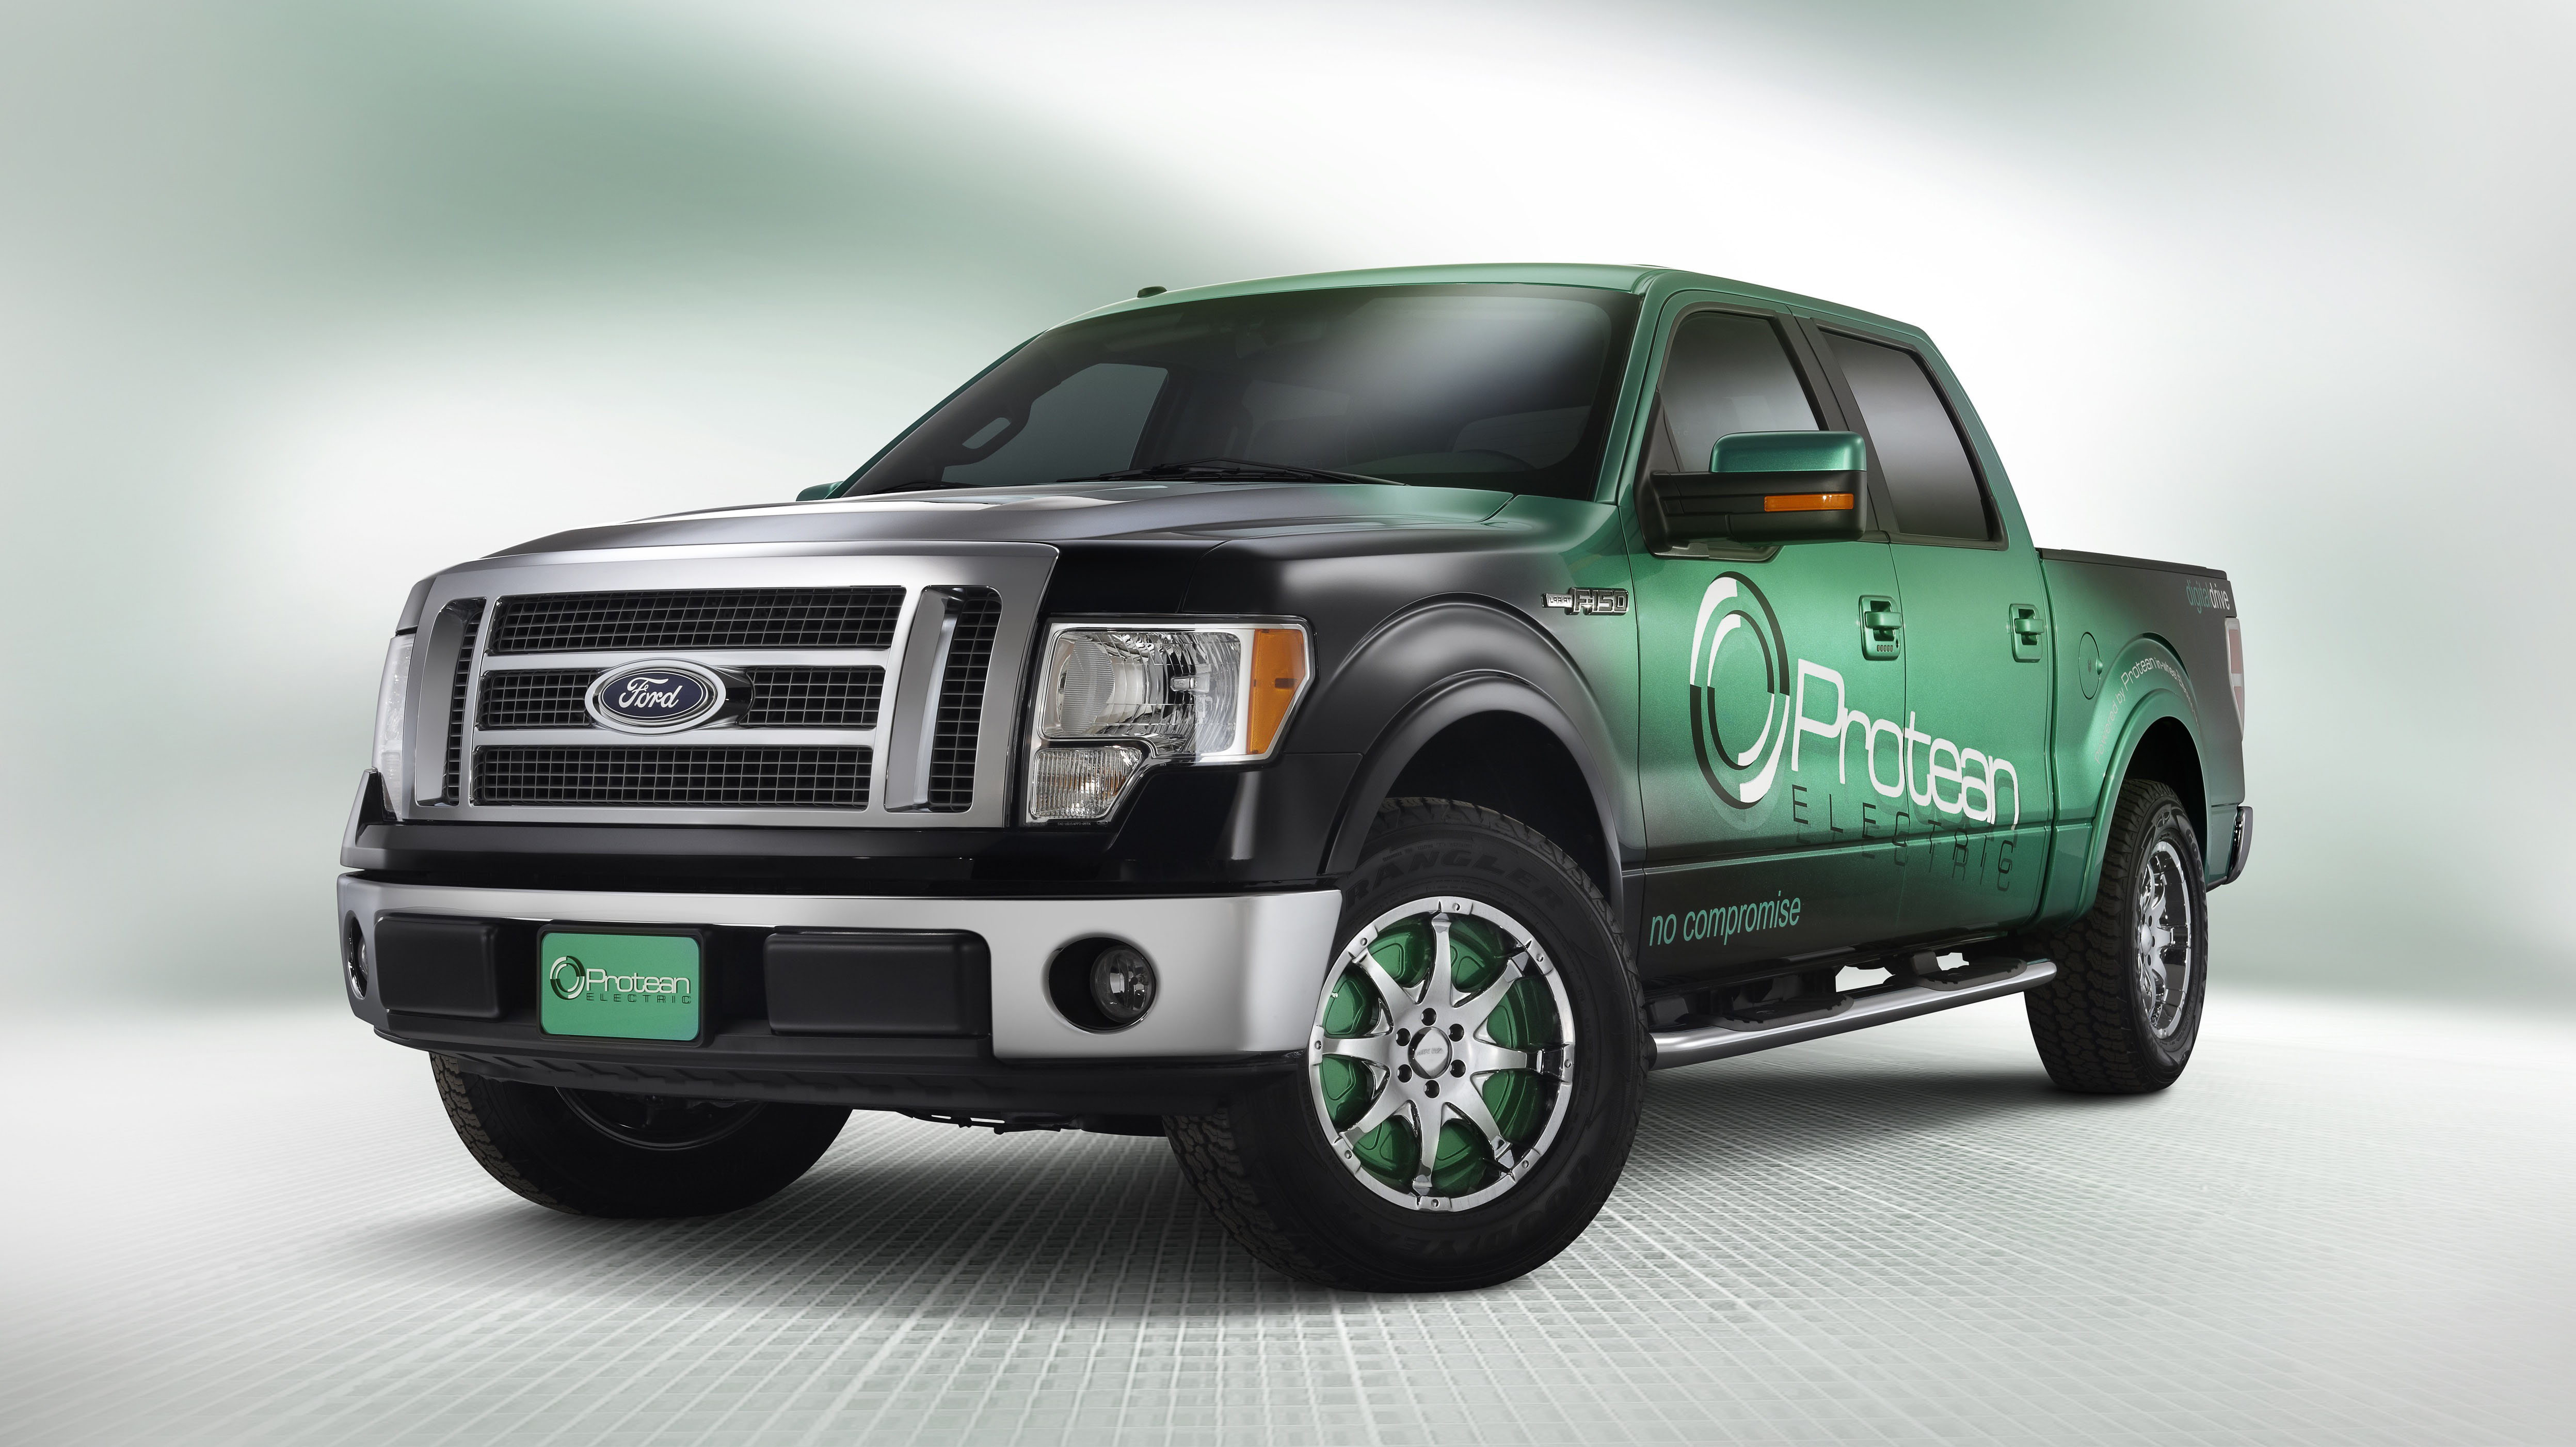 Protean Electric wants your wheels to power your car...